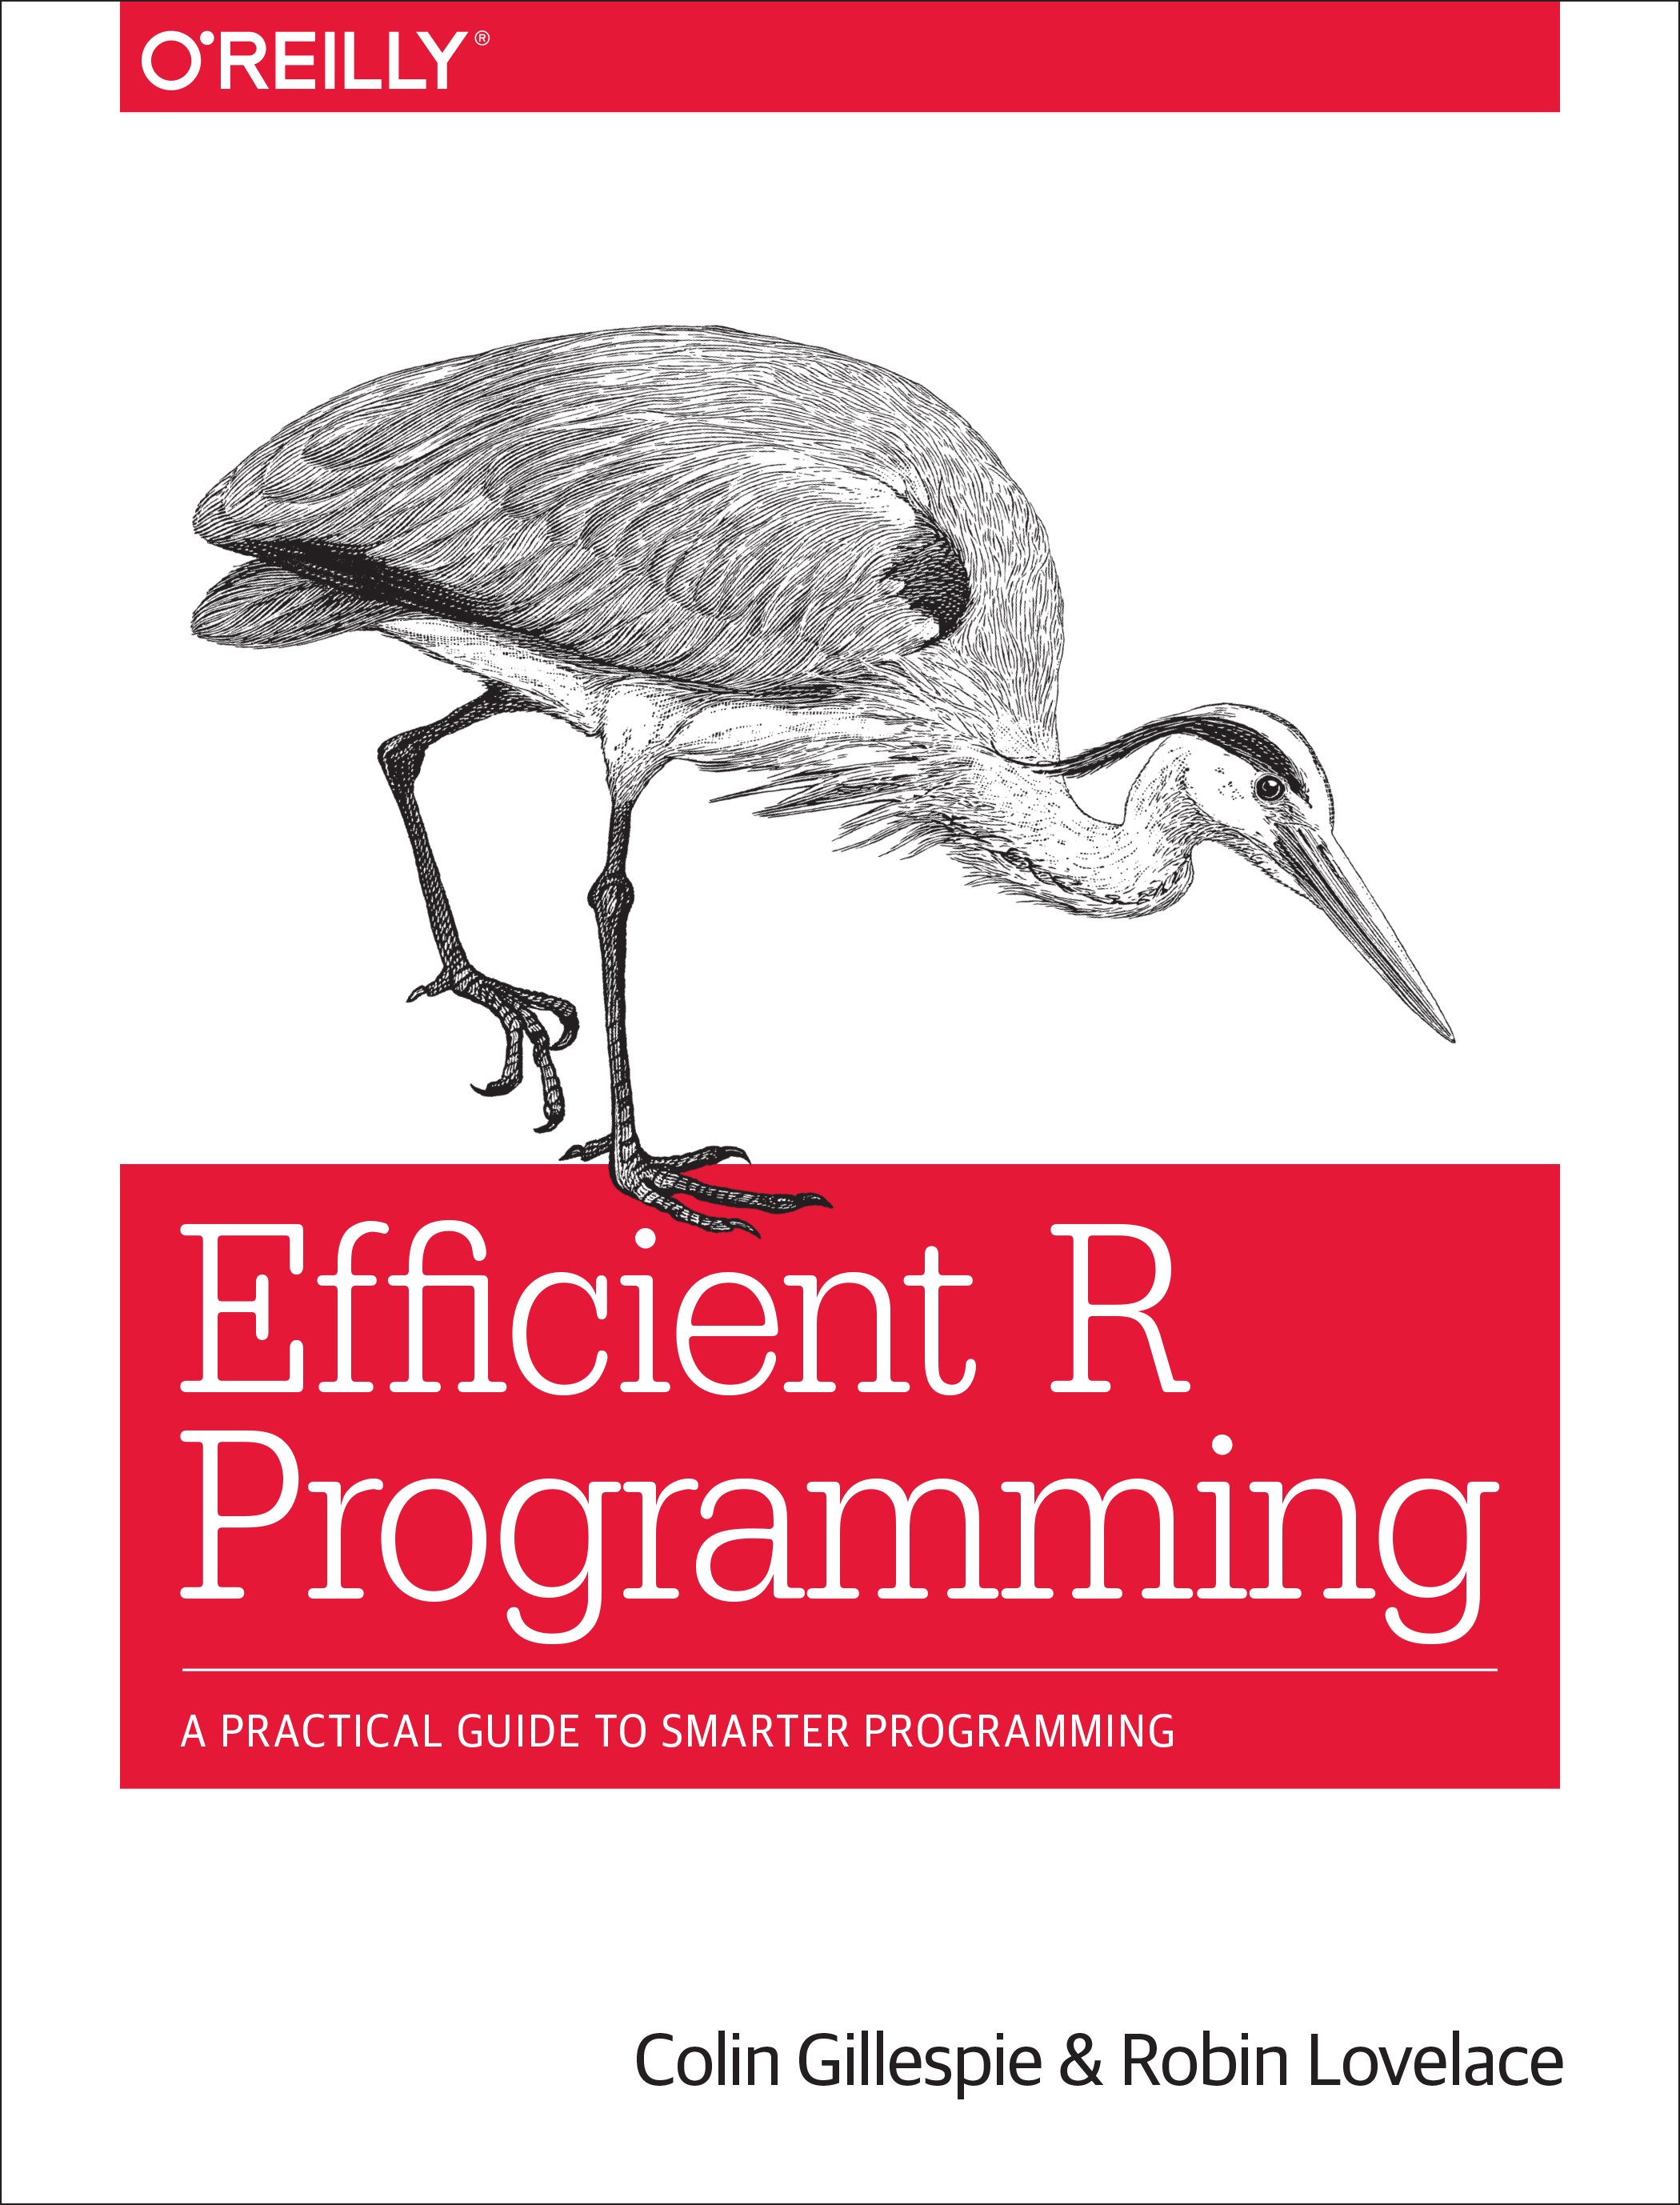 Compiling R-functions used in production - R Admins - RStudio Community